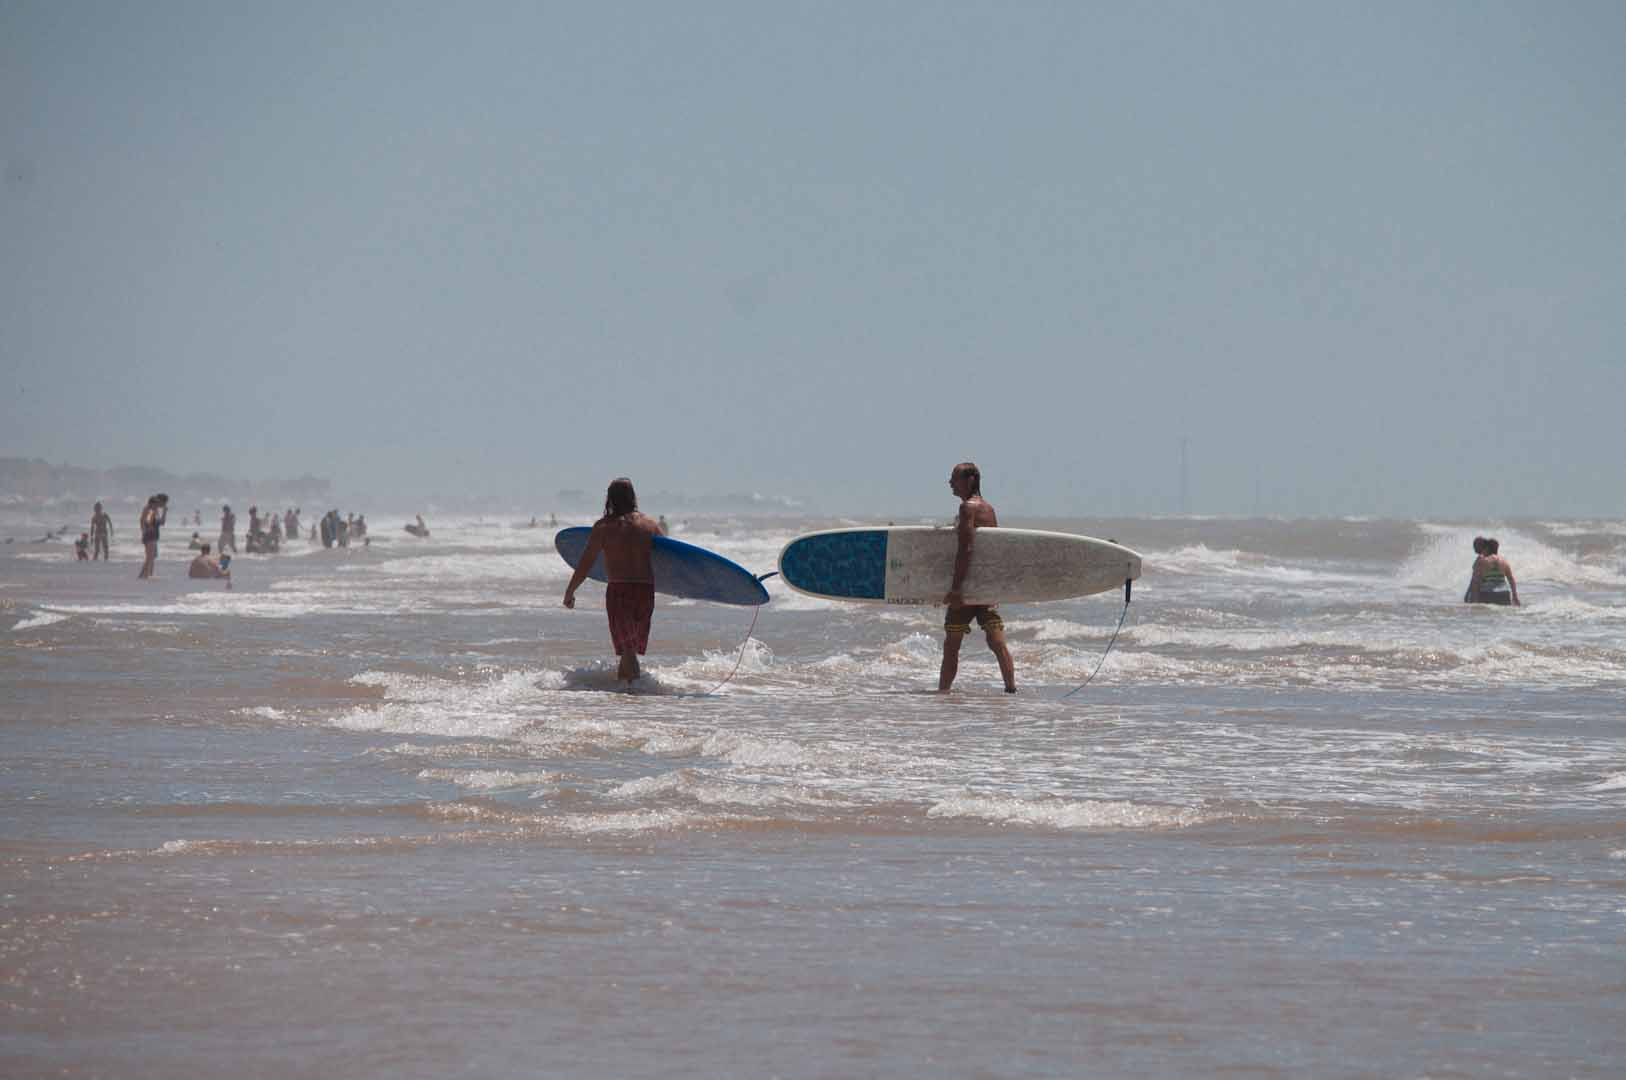 SurfsideLateJune_20150627_043